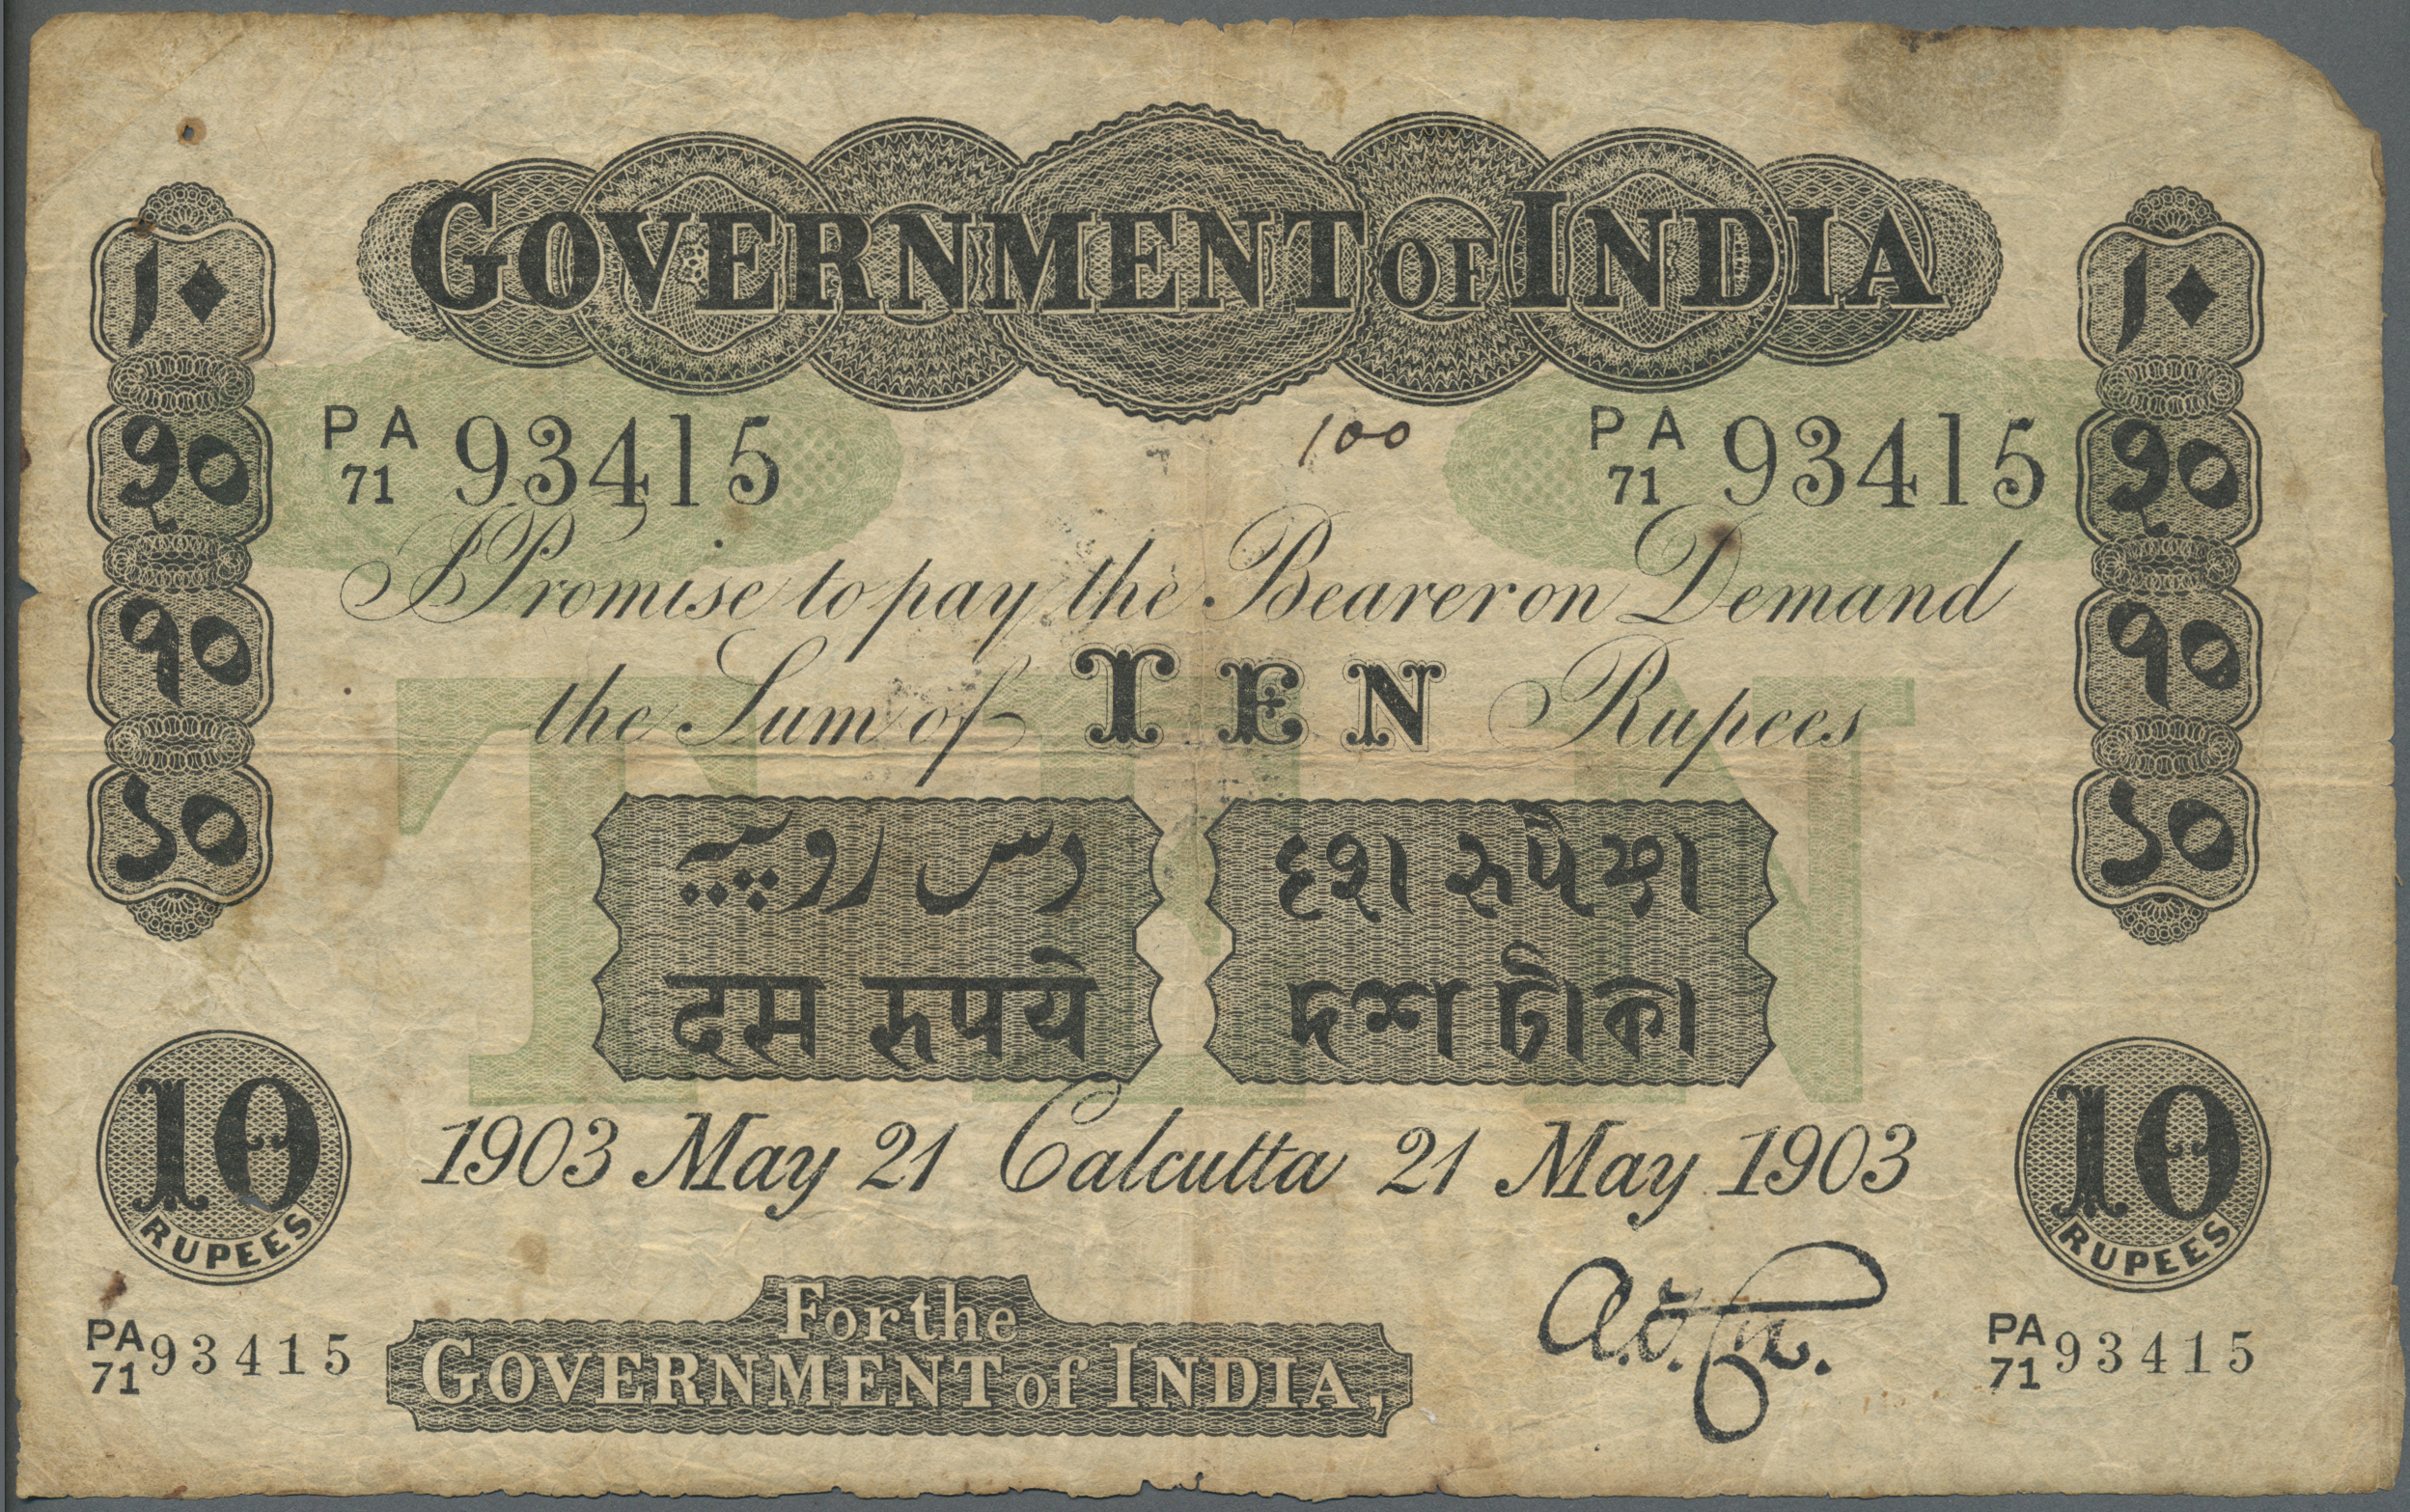 Lot 811 - India / Indien | Banknoten  -  Auktionshaus Christoph Gärtner GmbH & Co. KG Banknotes Worldwide Auction #39 Day 1